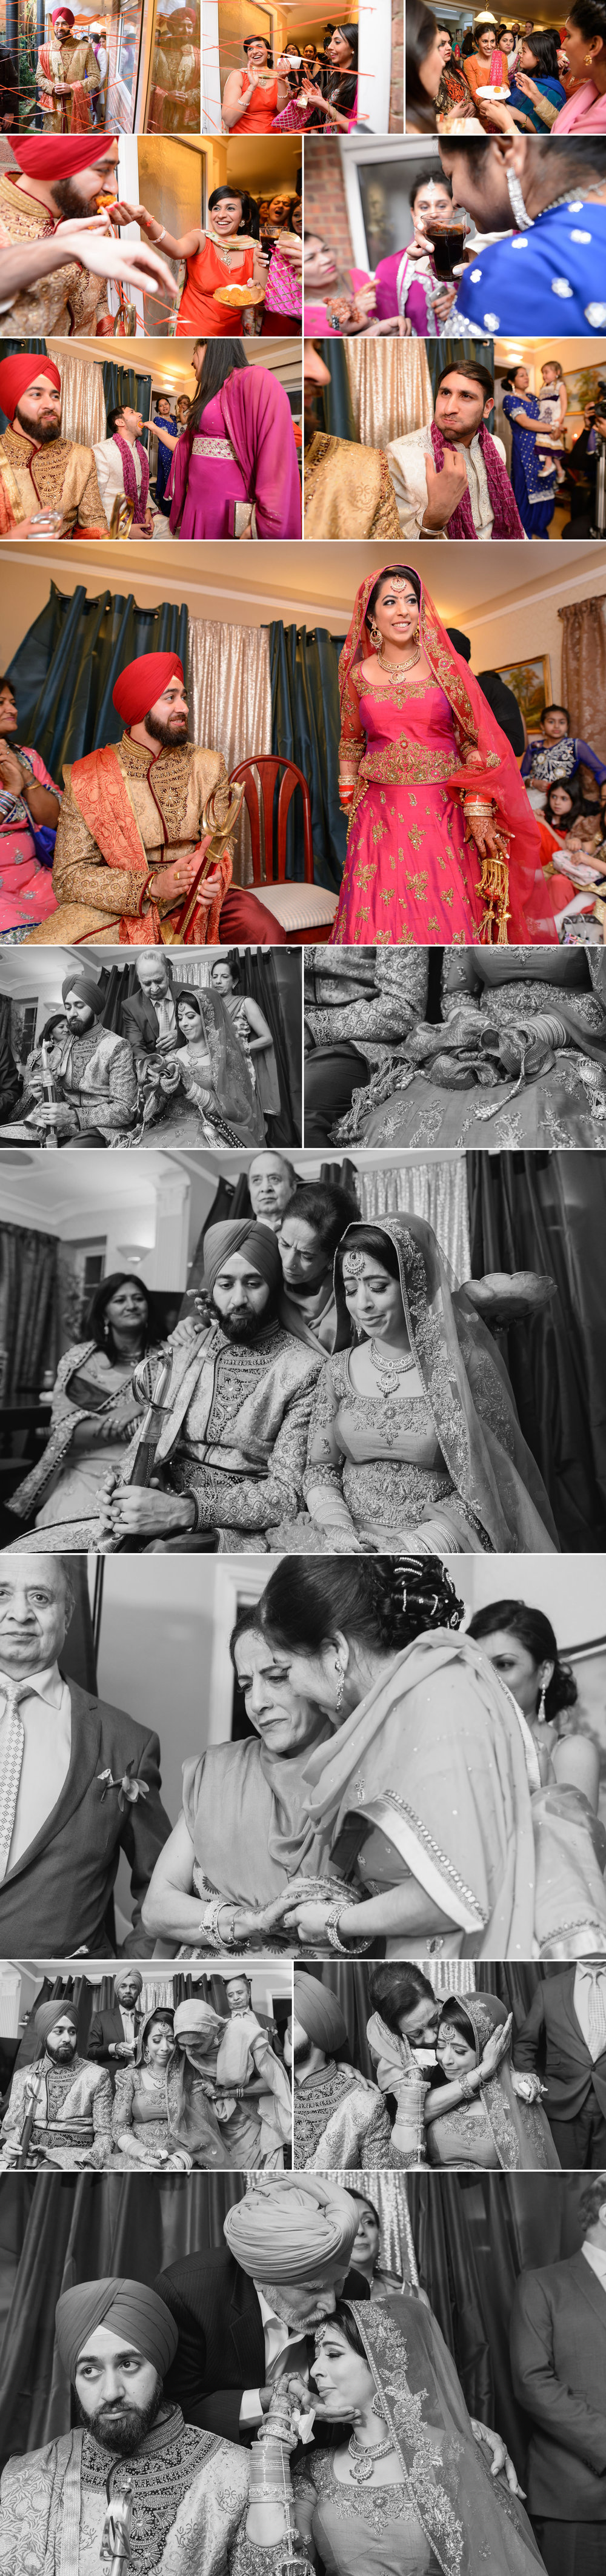 satnam photography sikh wedding ceremony alice way gurdwara london hounslow wedding photography-7